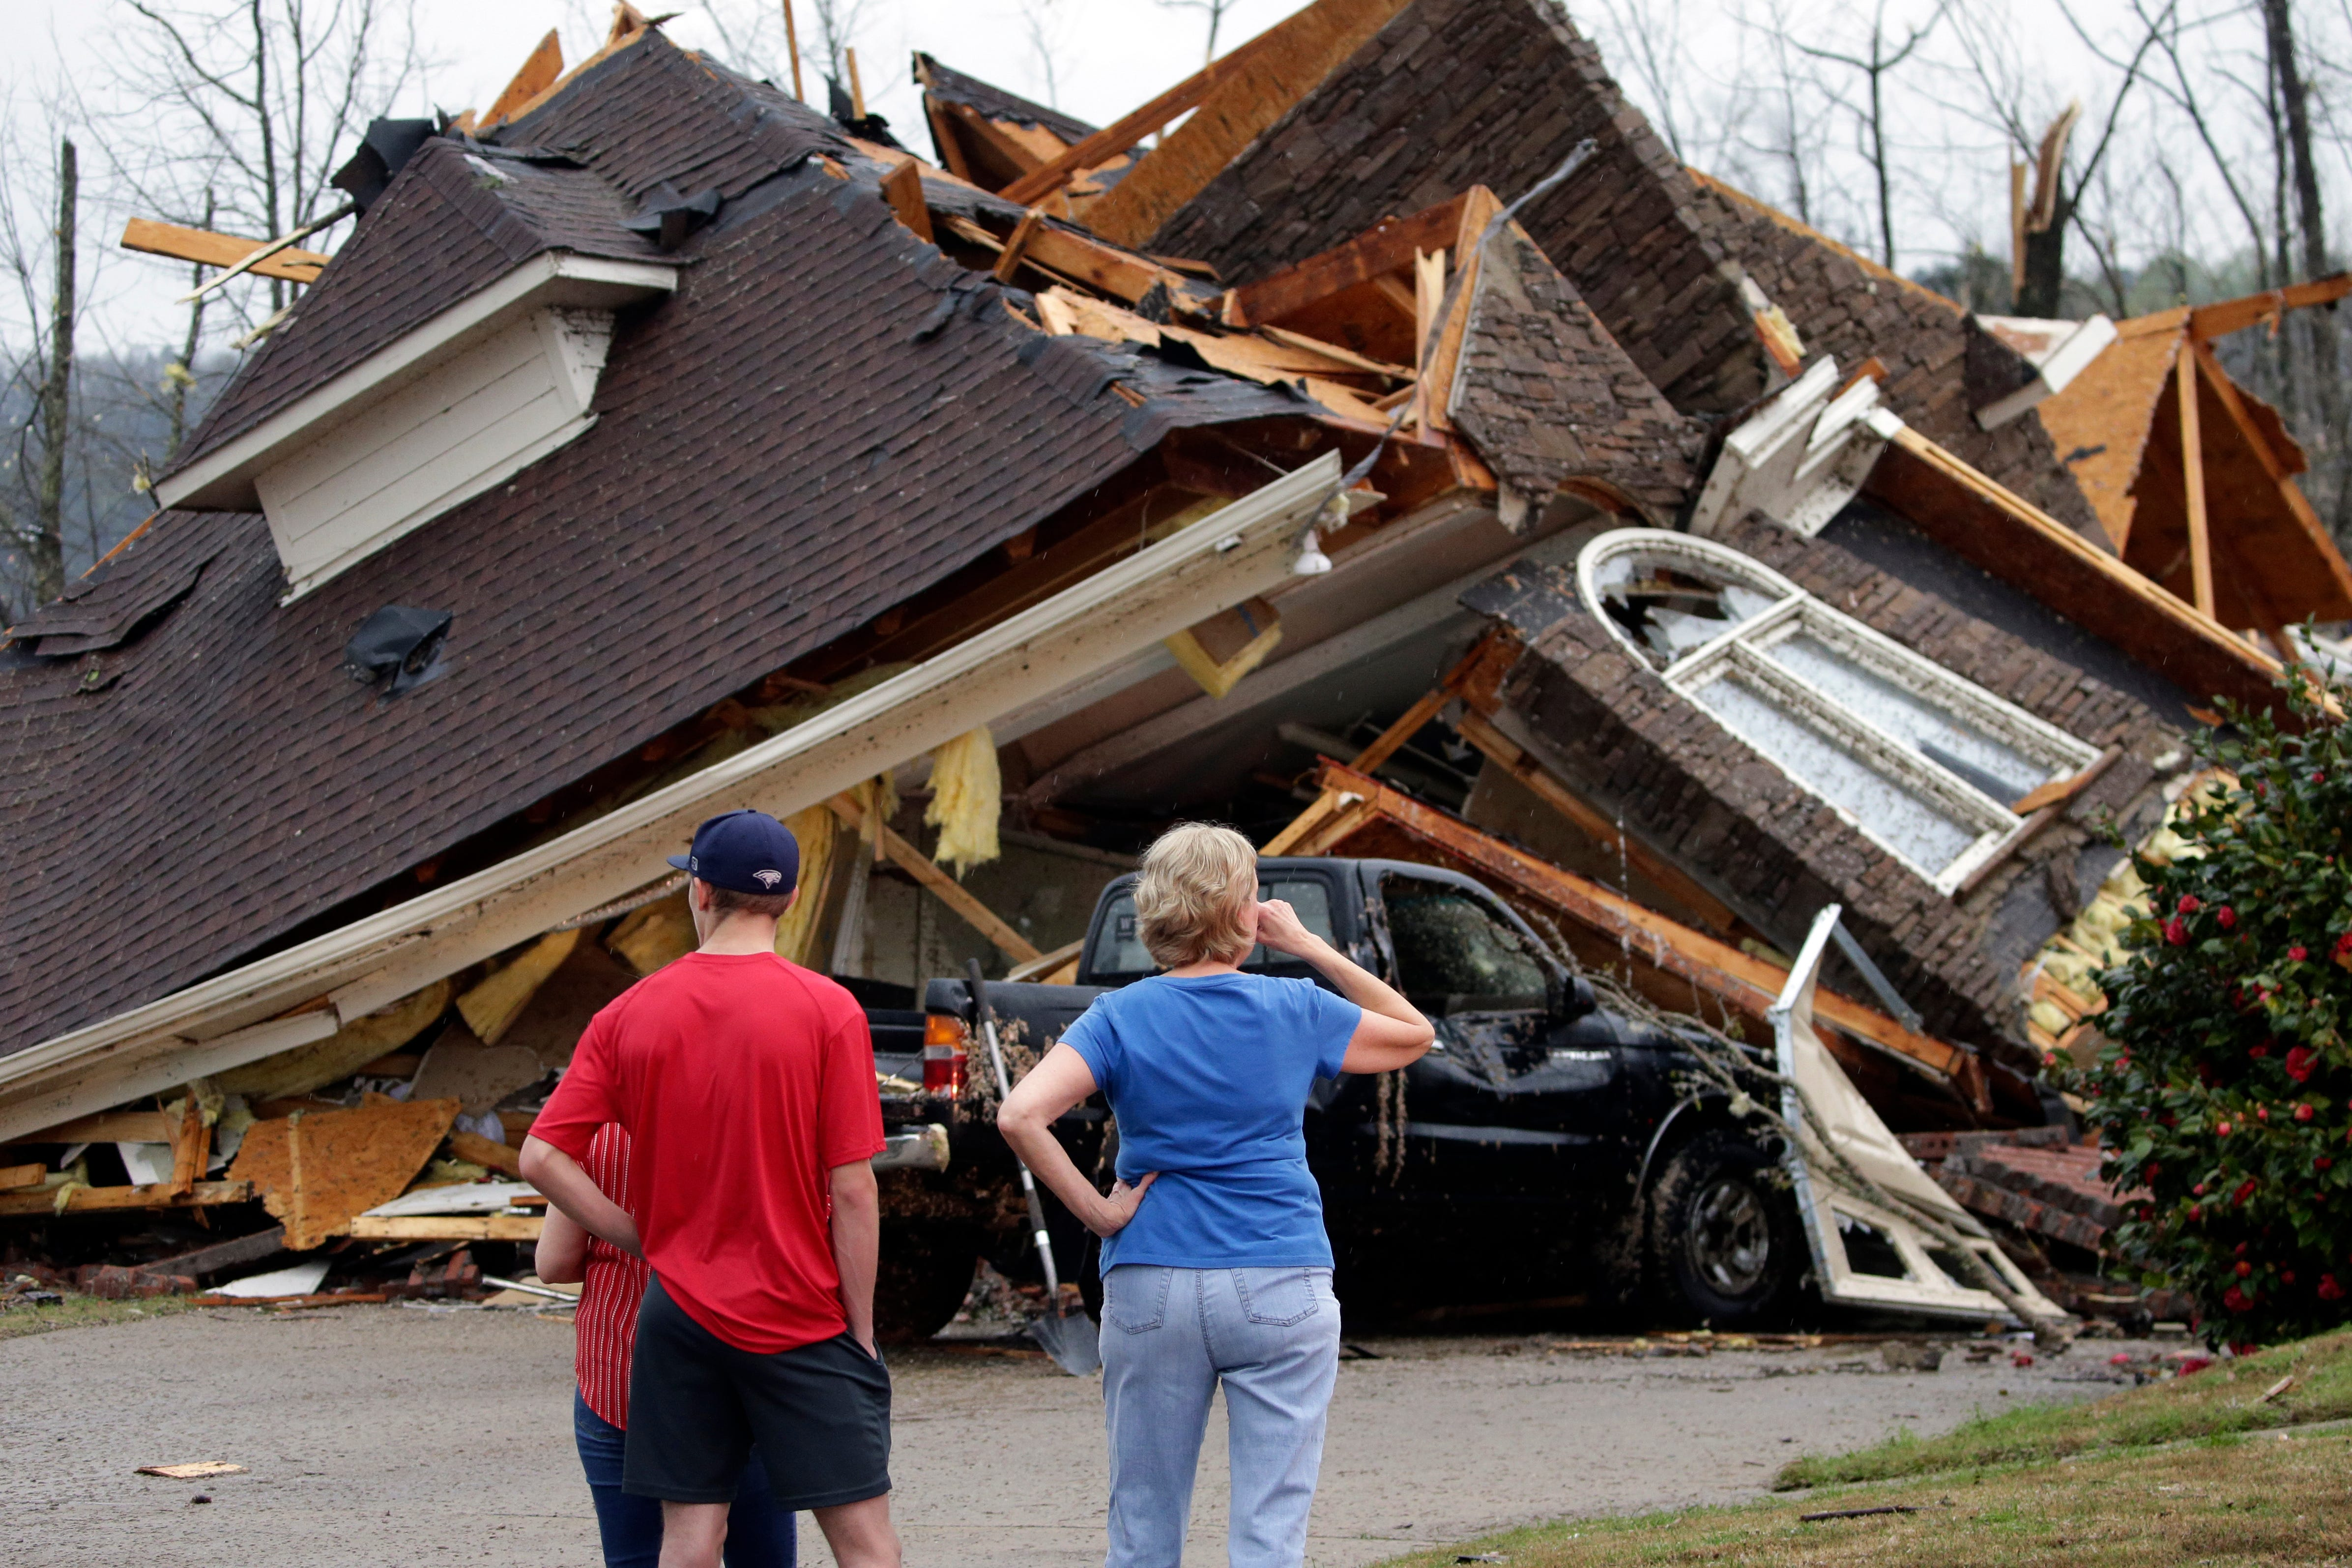 Tornado flattens homes in Alabama, knocks out power in South 1